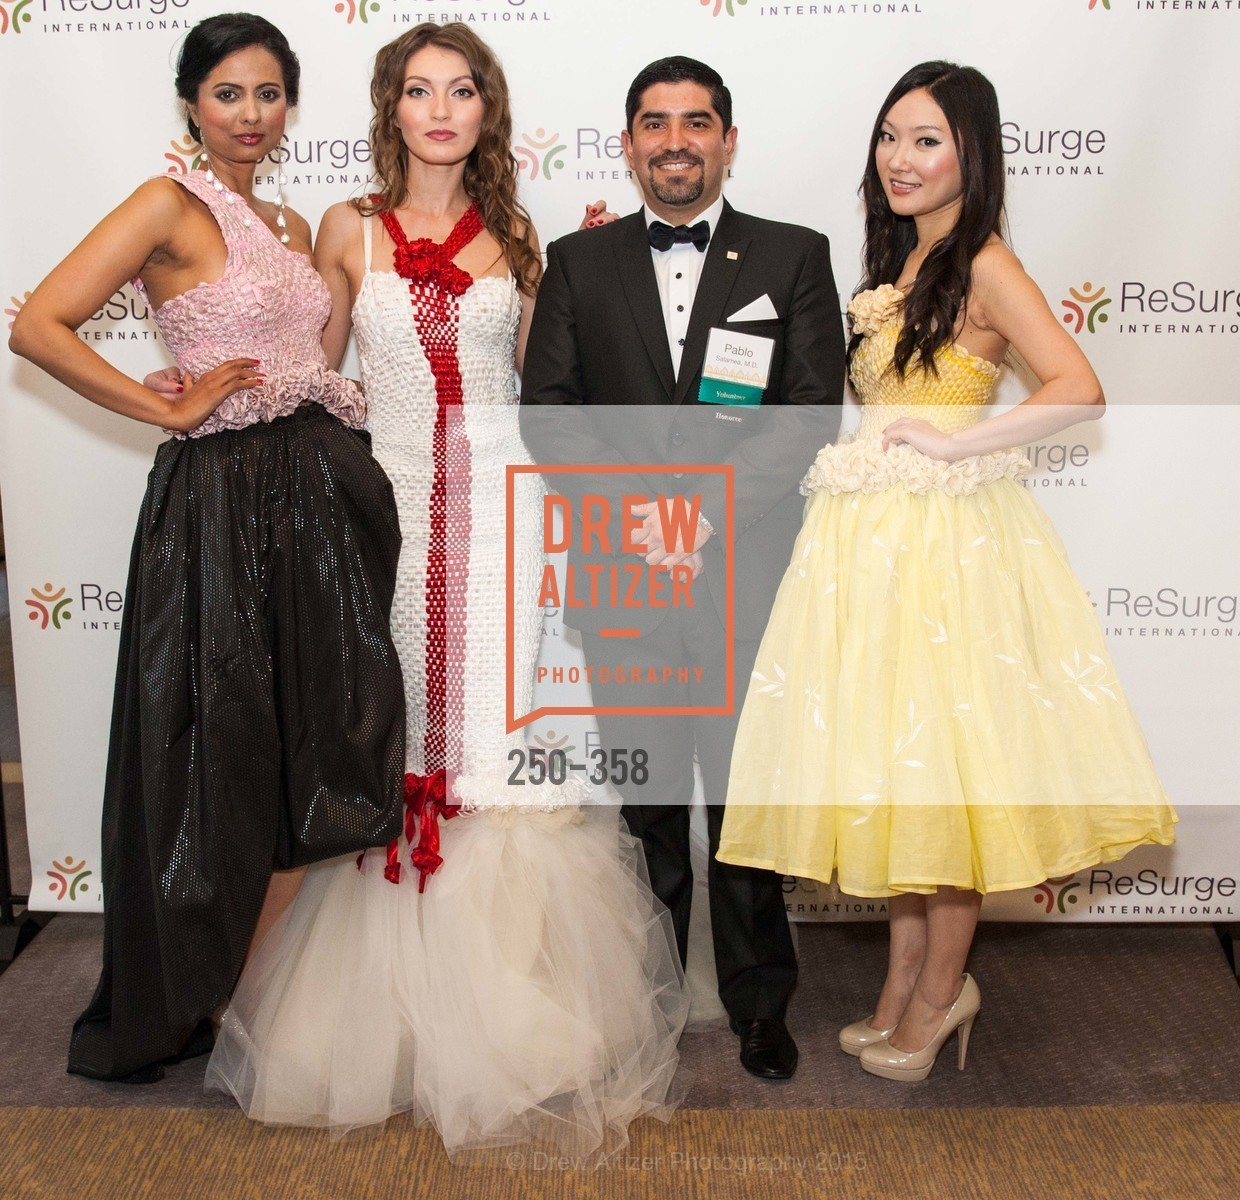 Pablo Salamea, ReSurge International Gala, Four Seasons San Francisco, October 10th, 2015,Drew Altizer, Drew Altizer Photography, full-service agency, private events, San Francisco photographer, photographer california